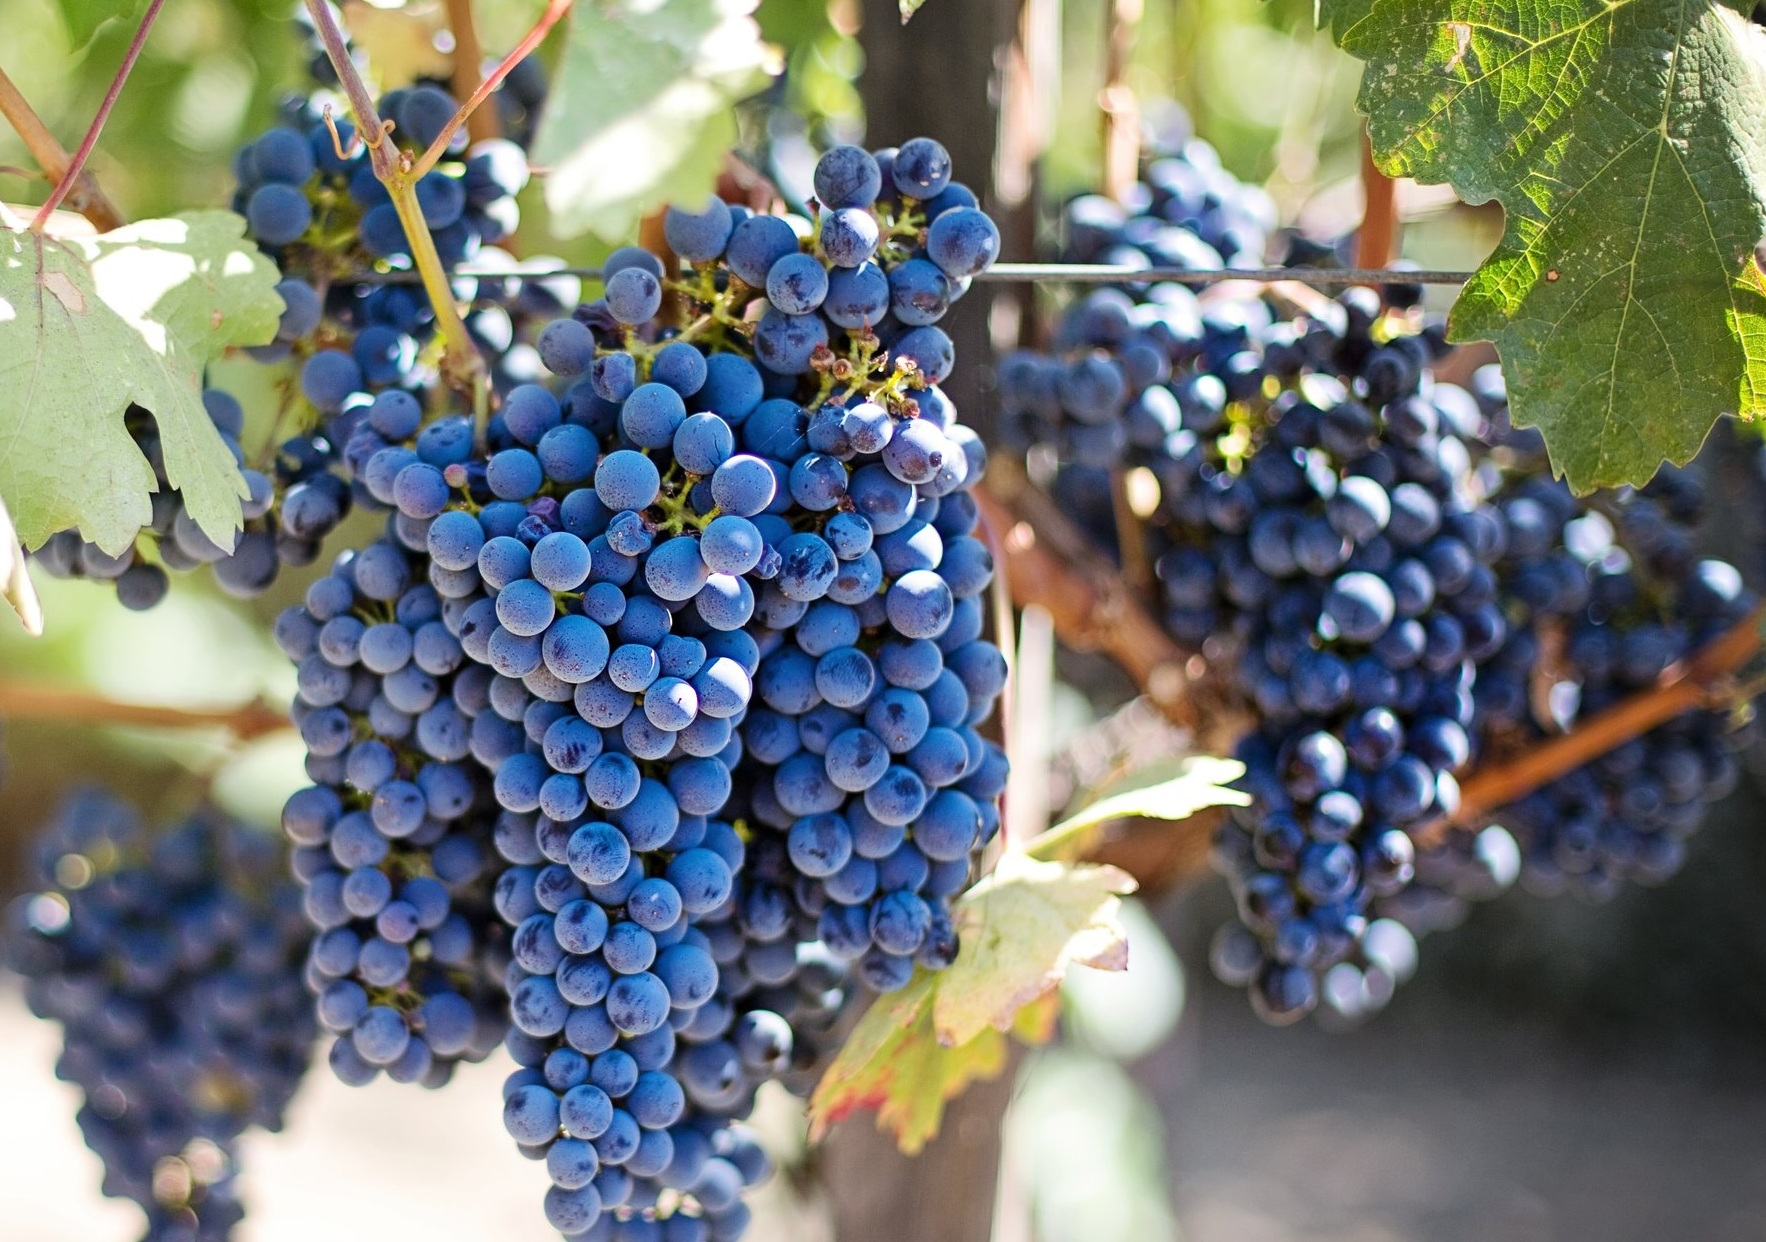 fruits-grapes-grapevines-45209.jpg